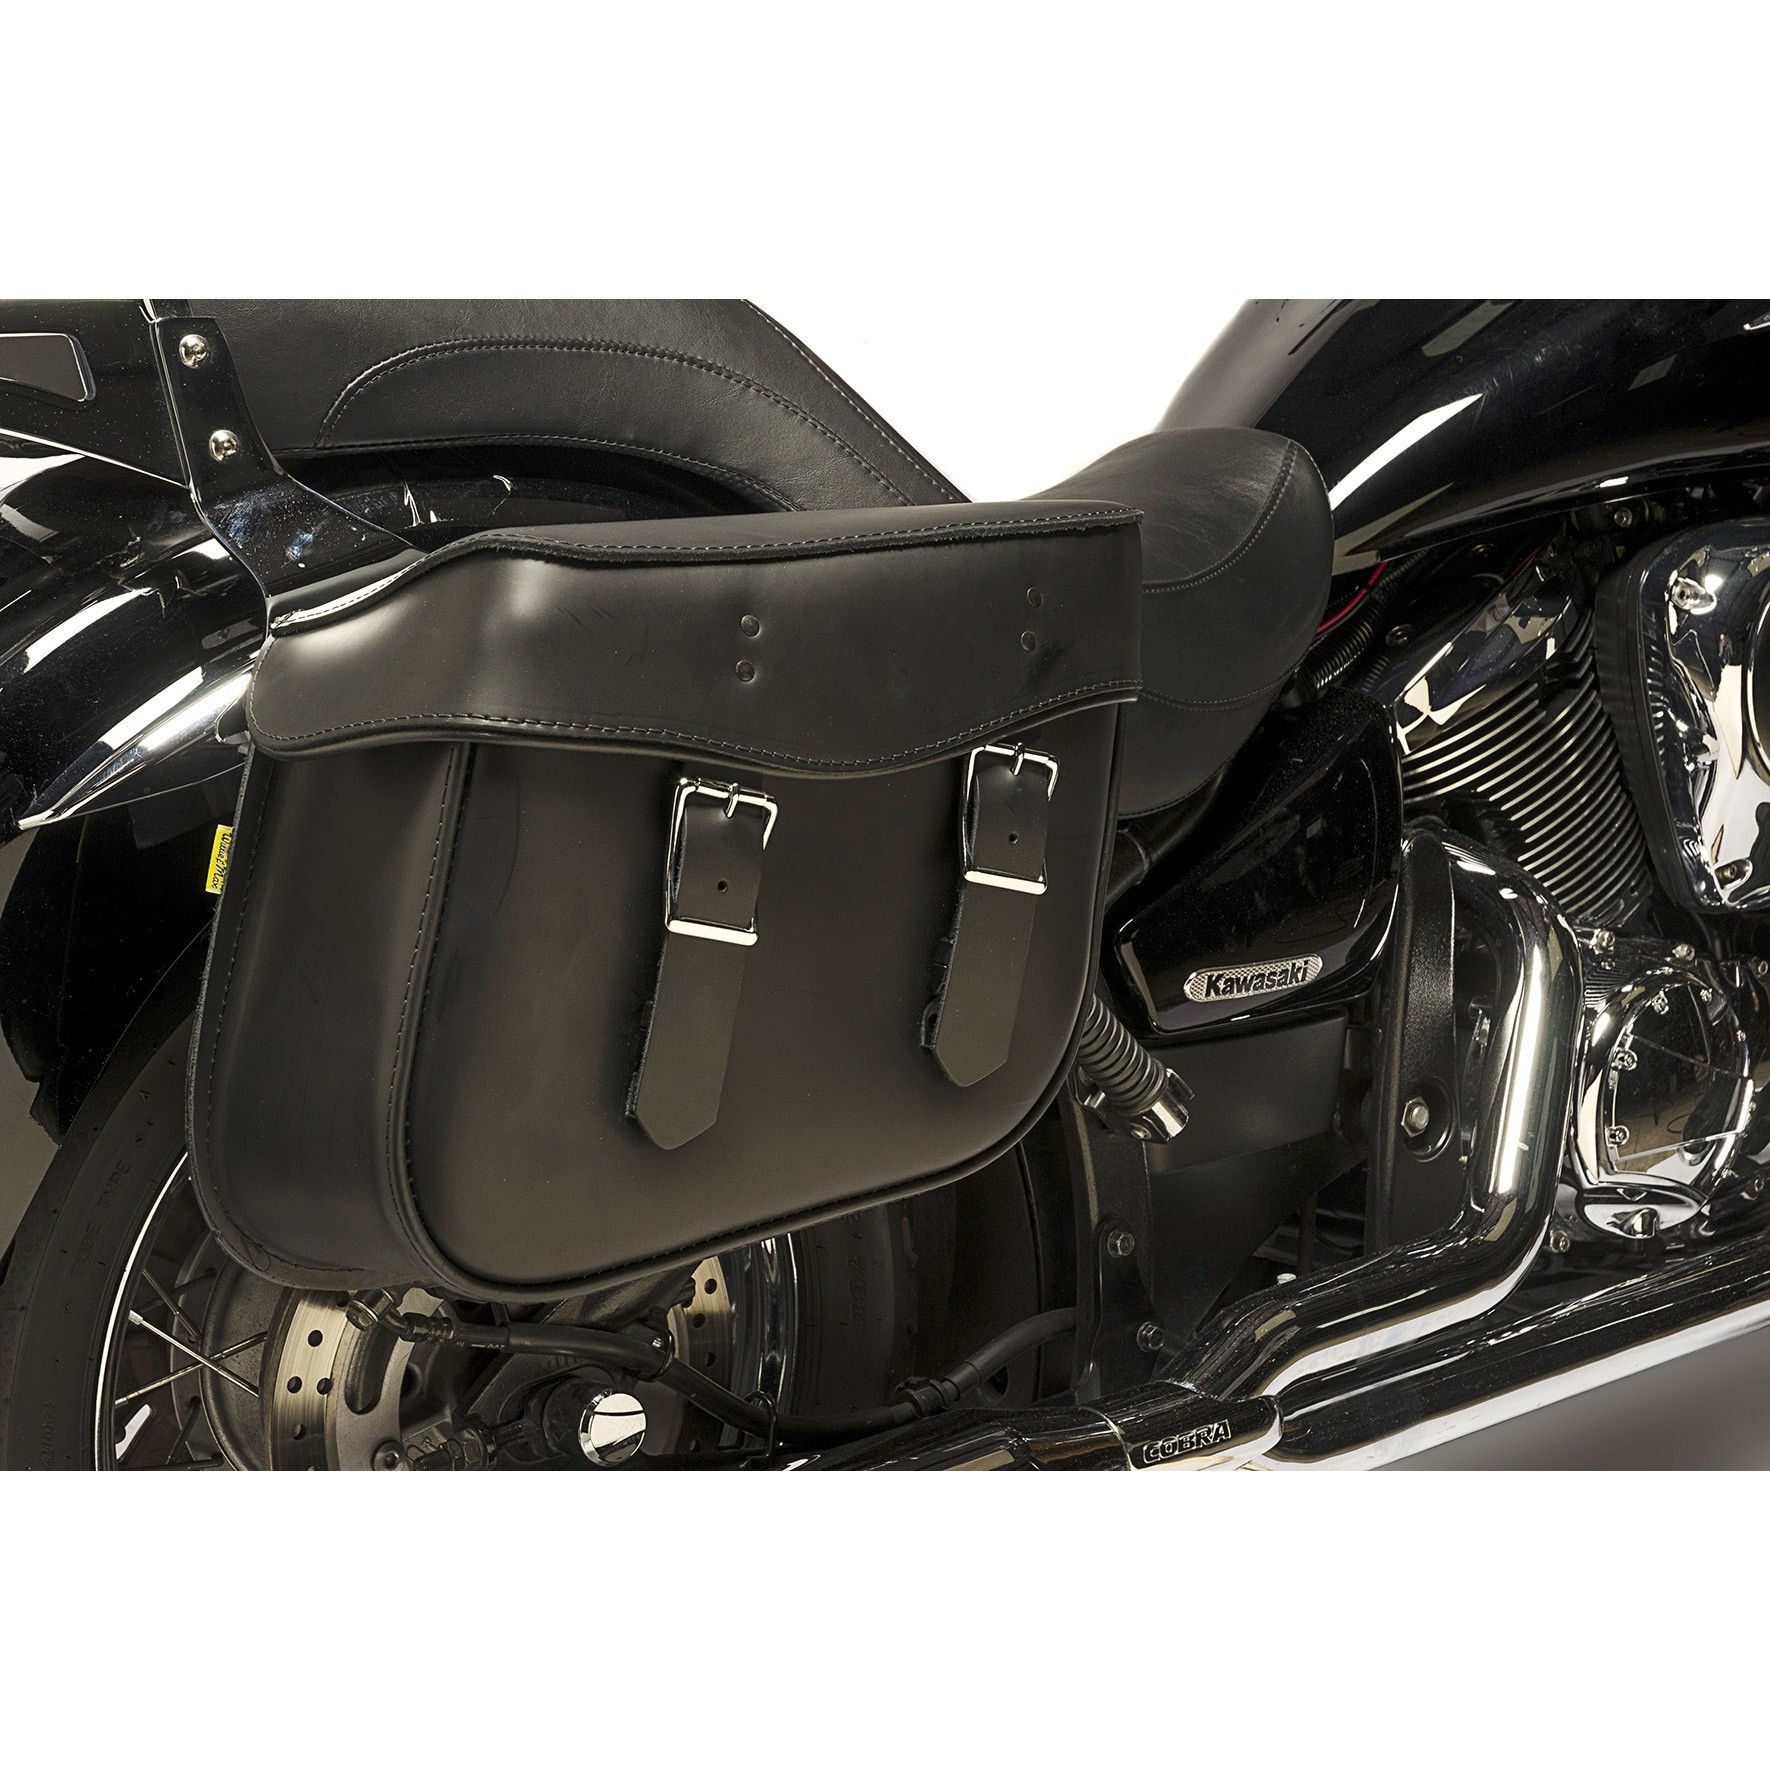 Willie and Max Montana Leather Saddlebags on a Kawasaki Vulcan 900